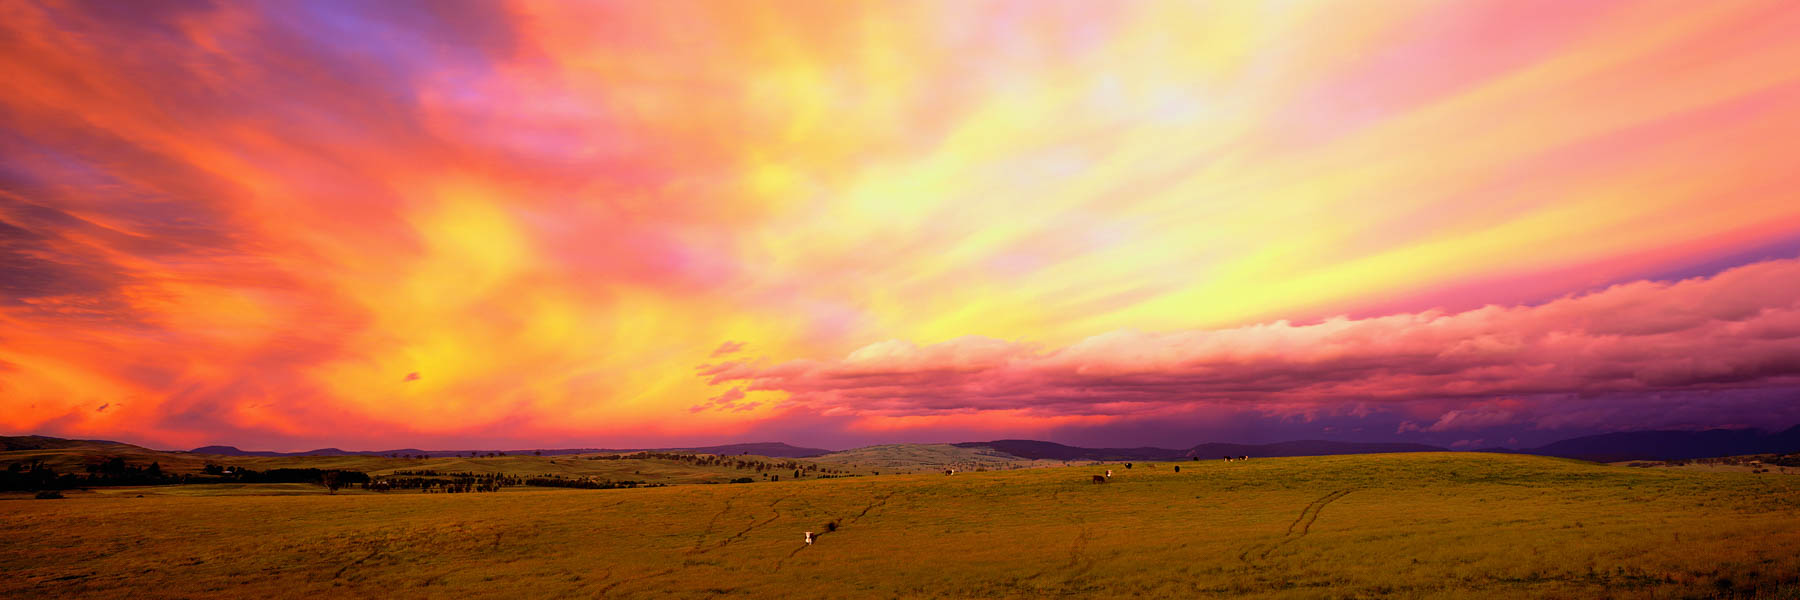 A blazing sunset lighting up the sky over farmlands at Mansfield, Victoria, Australia.